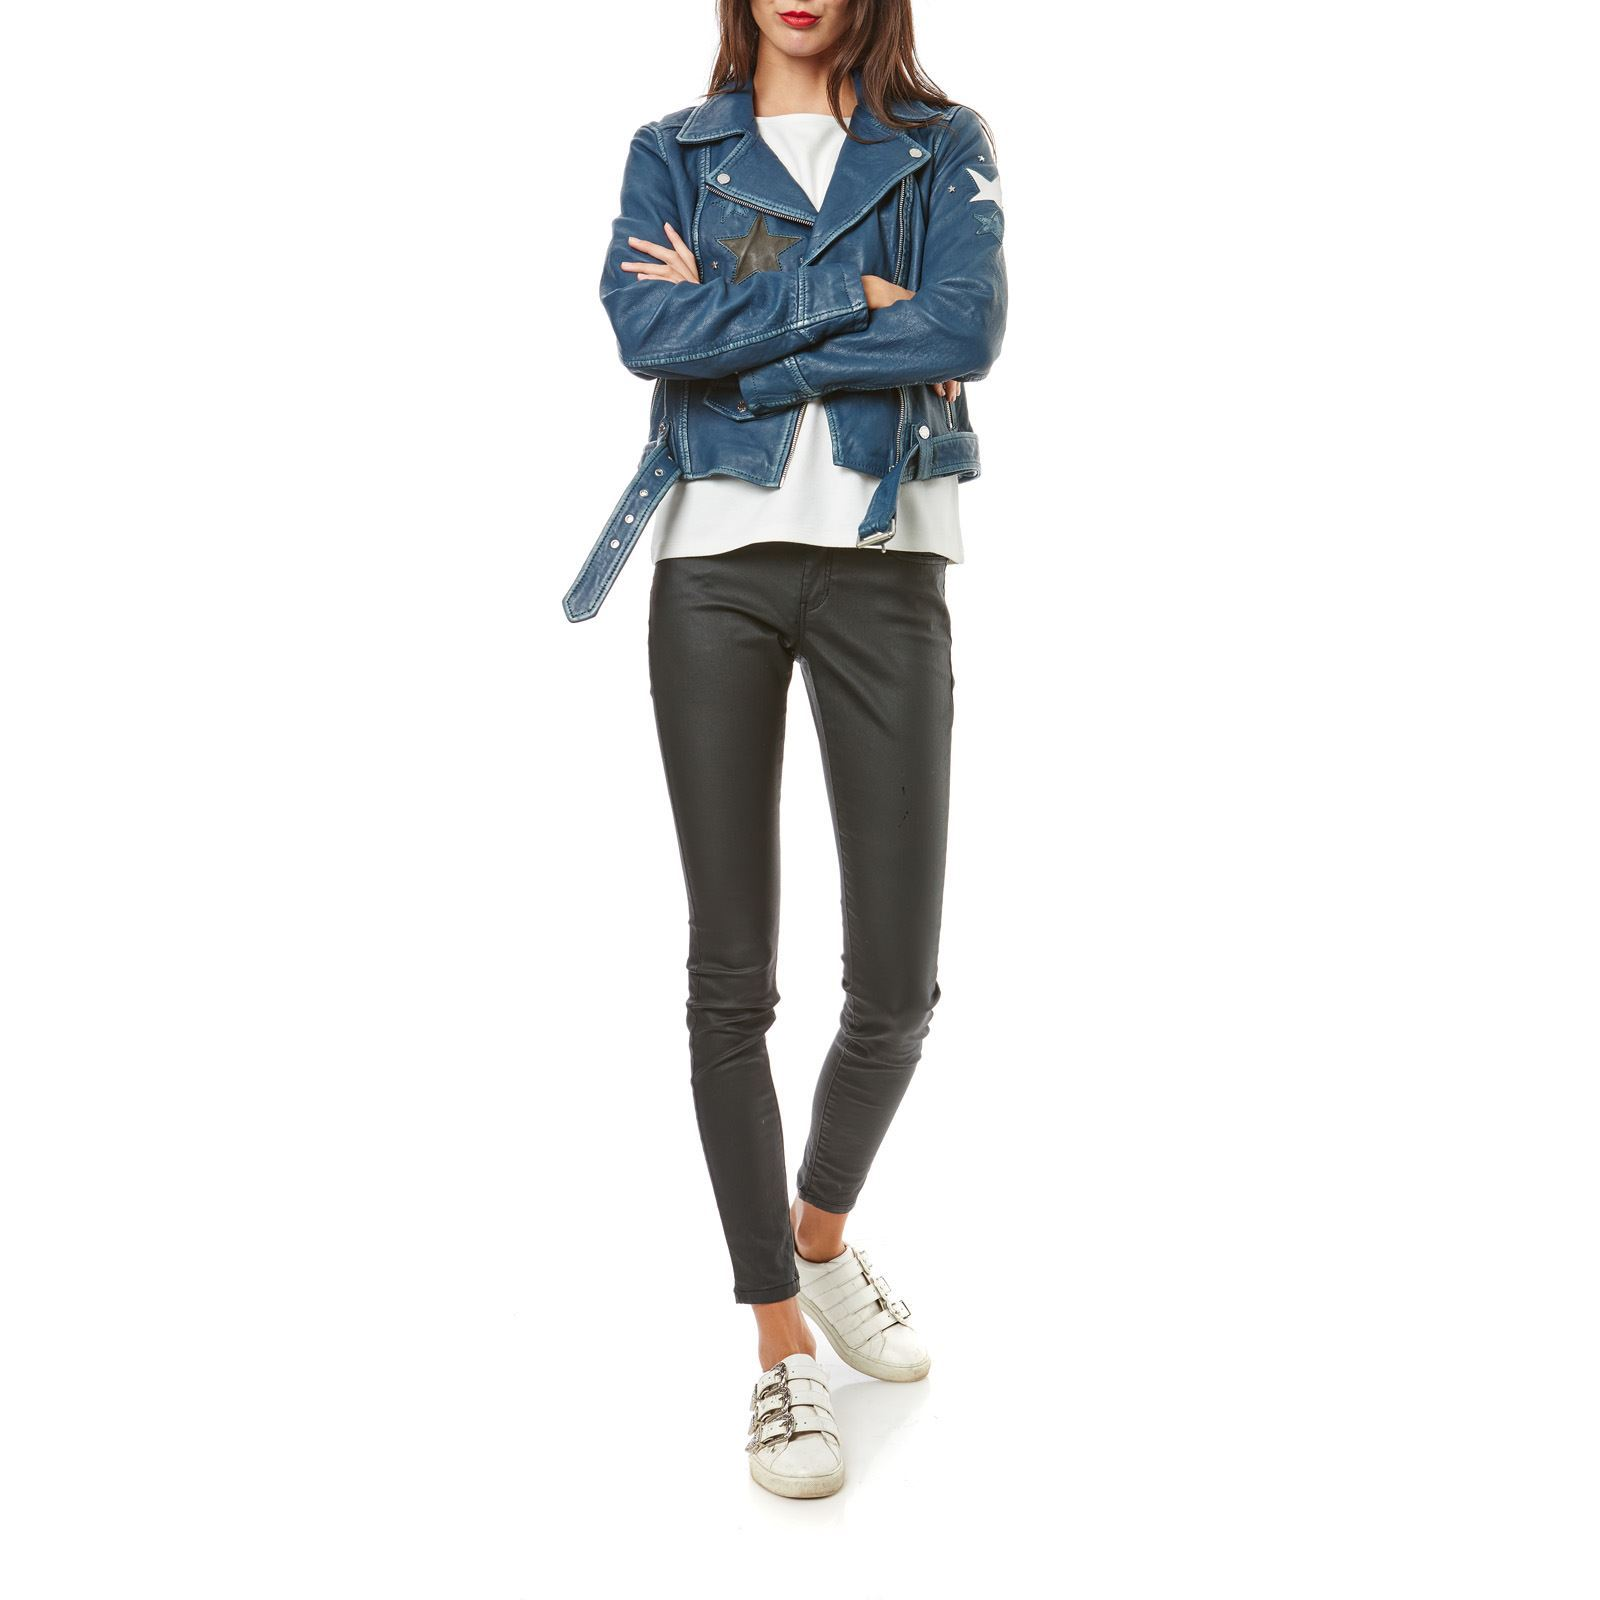 Oakwood Courtney - Veste biker en cuir de mouton - bleu jean   BrandAlley af504337890c